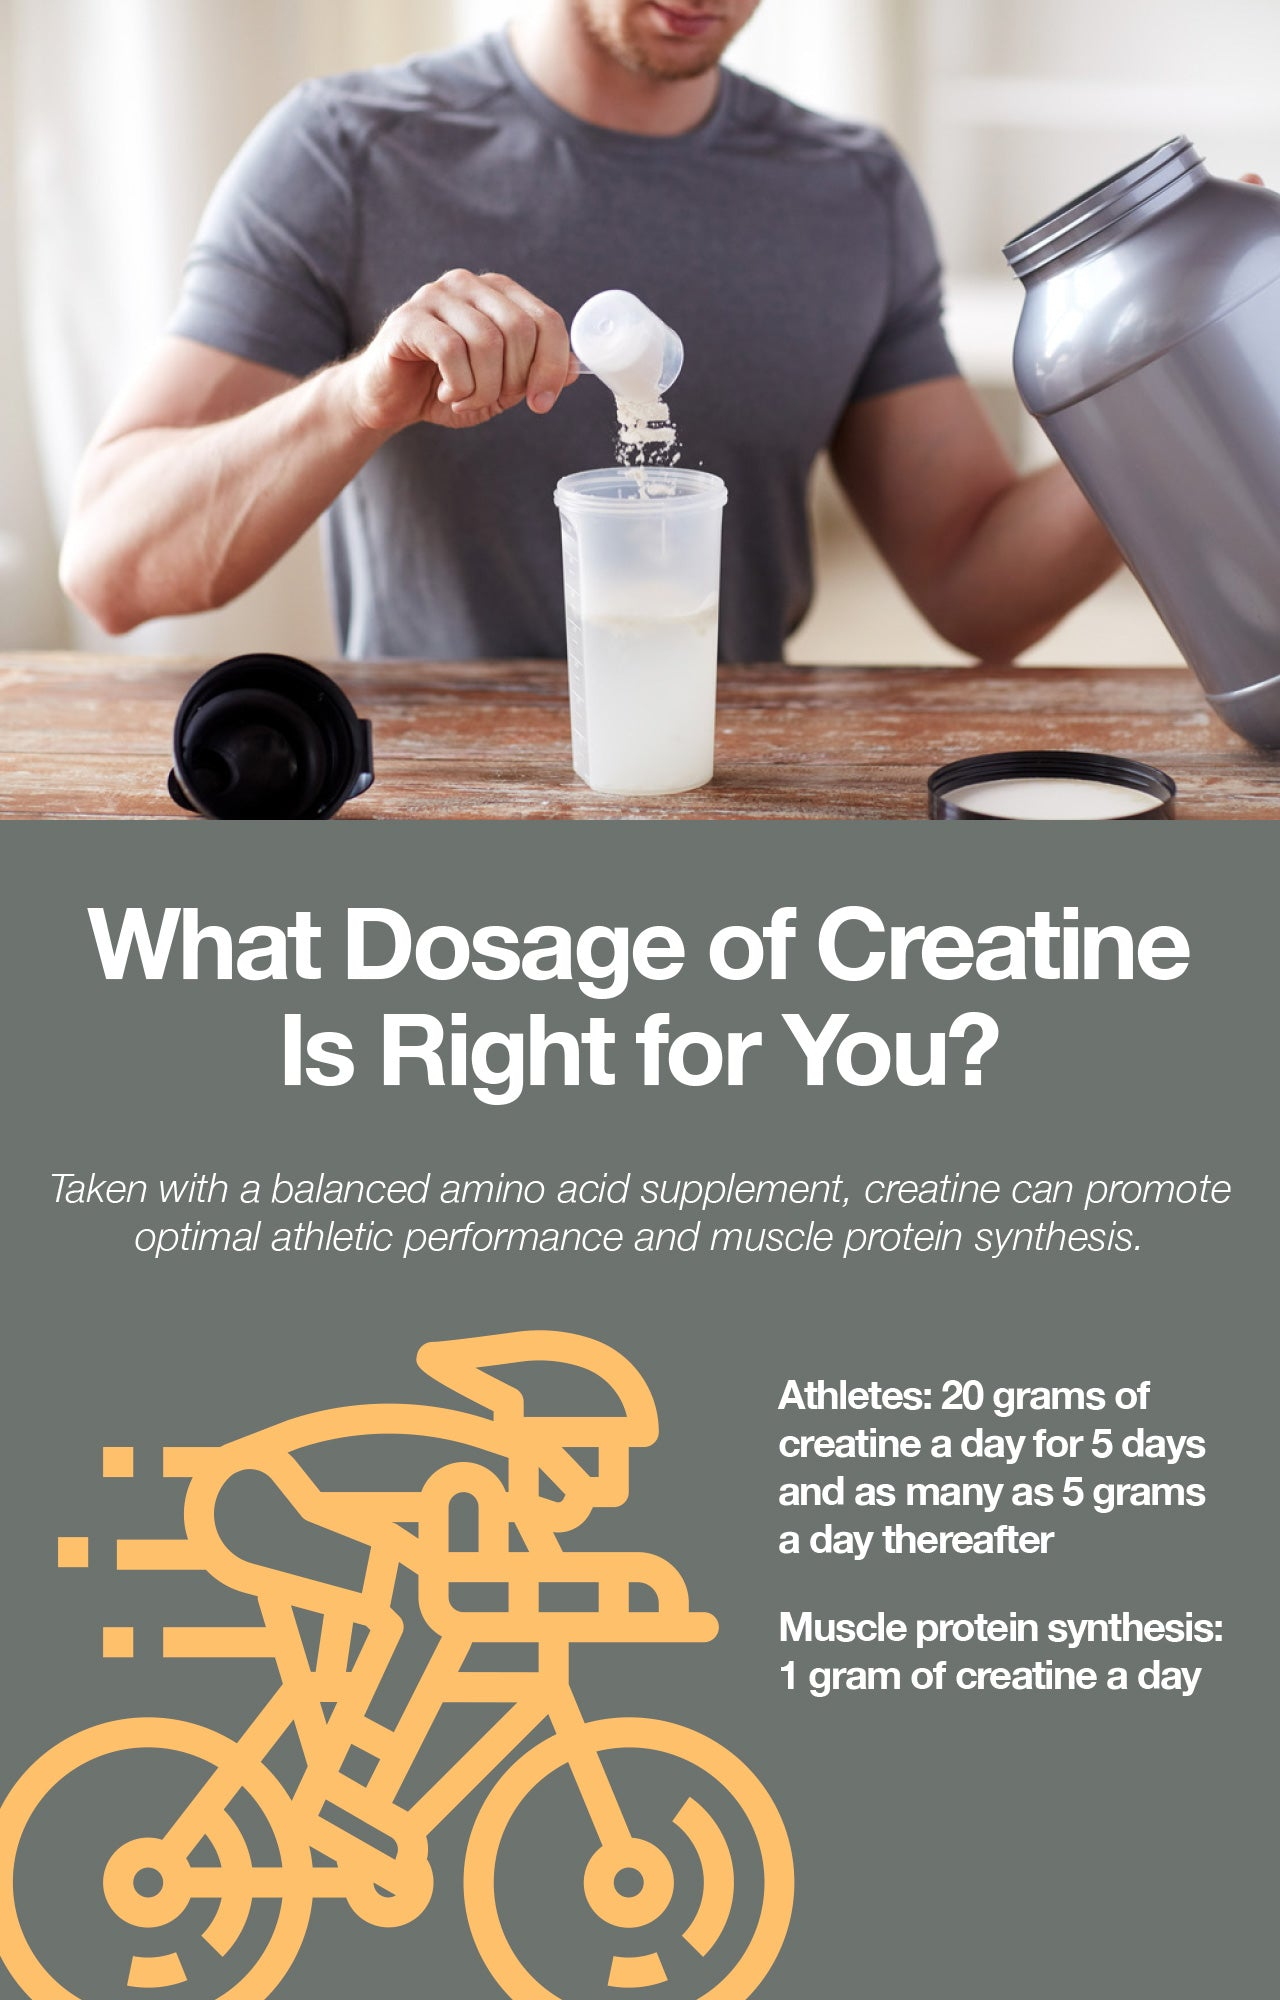 Creatine has beneficial effects on athletic performance